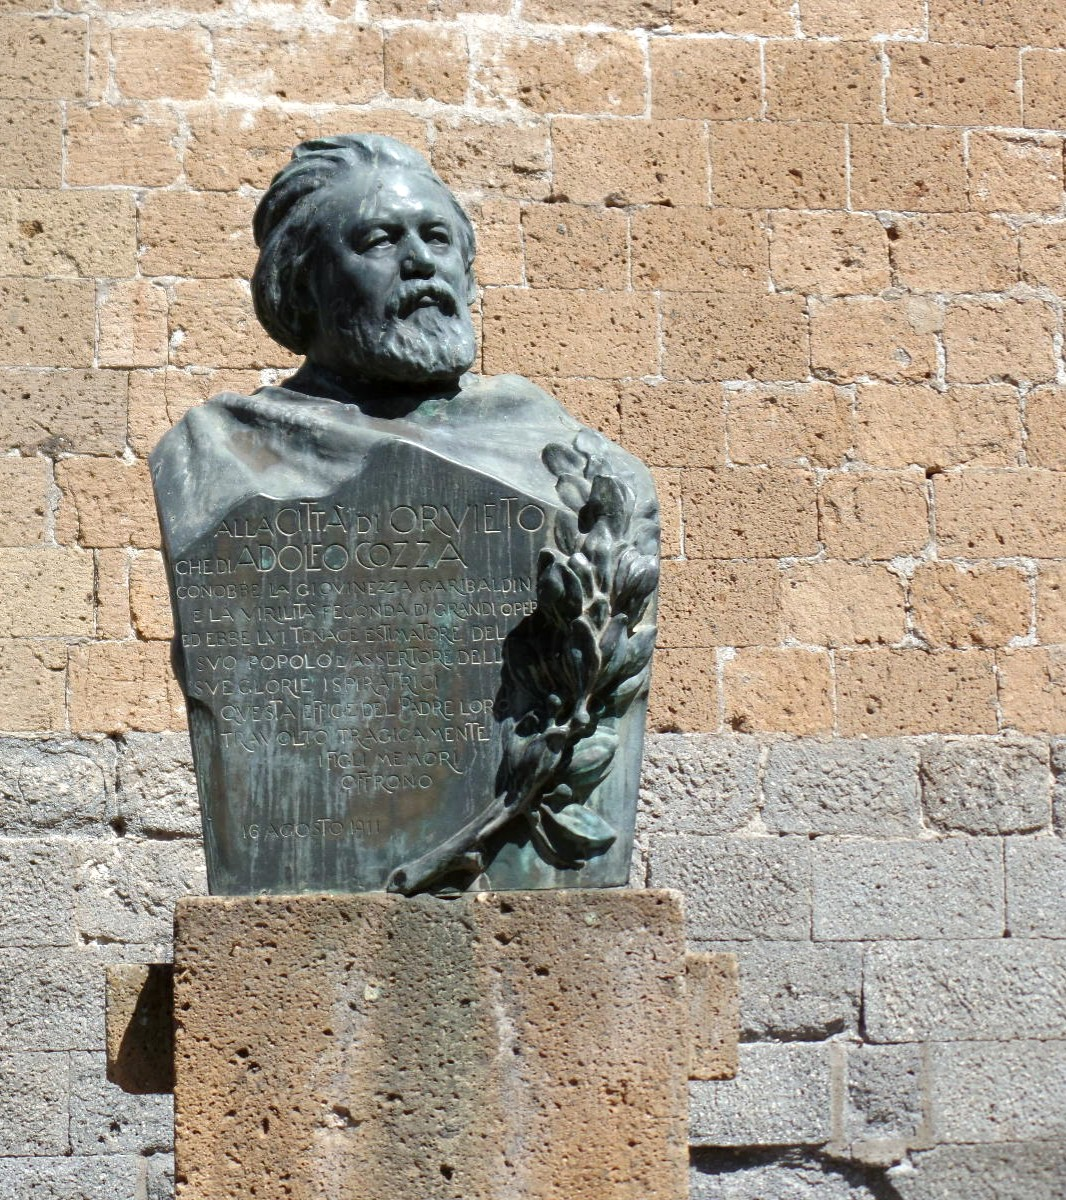 Bust of Adolfo Cozza